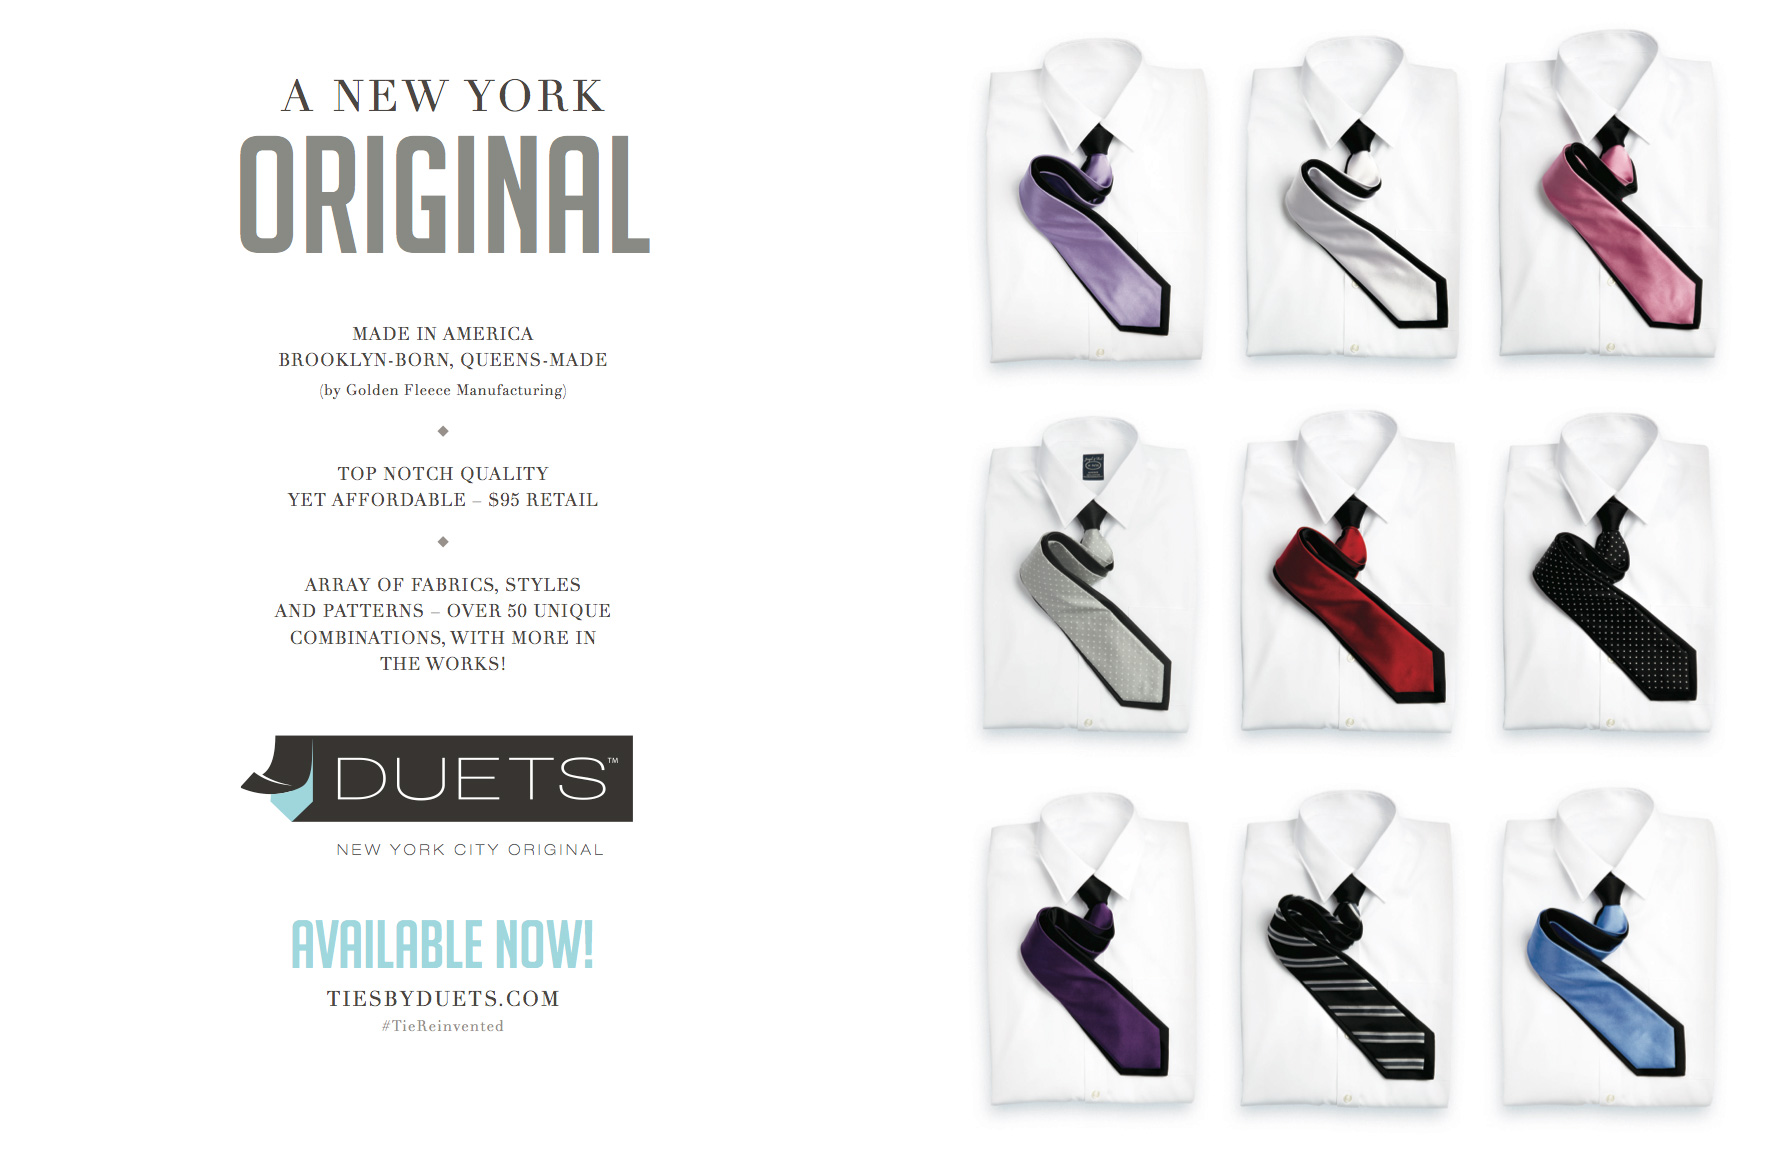 duets-formal-onepager.jpg